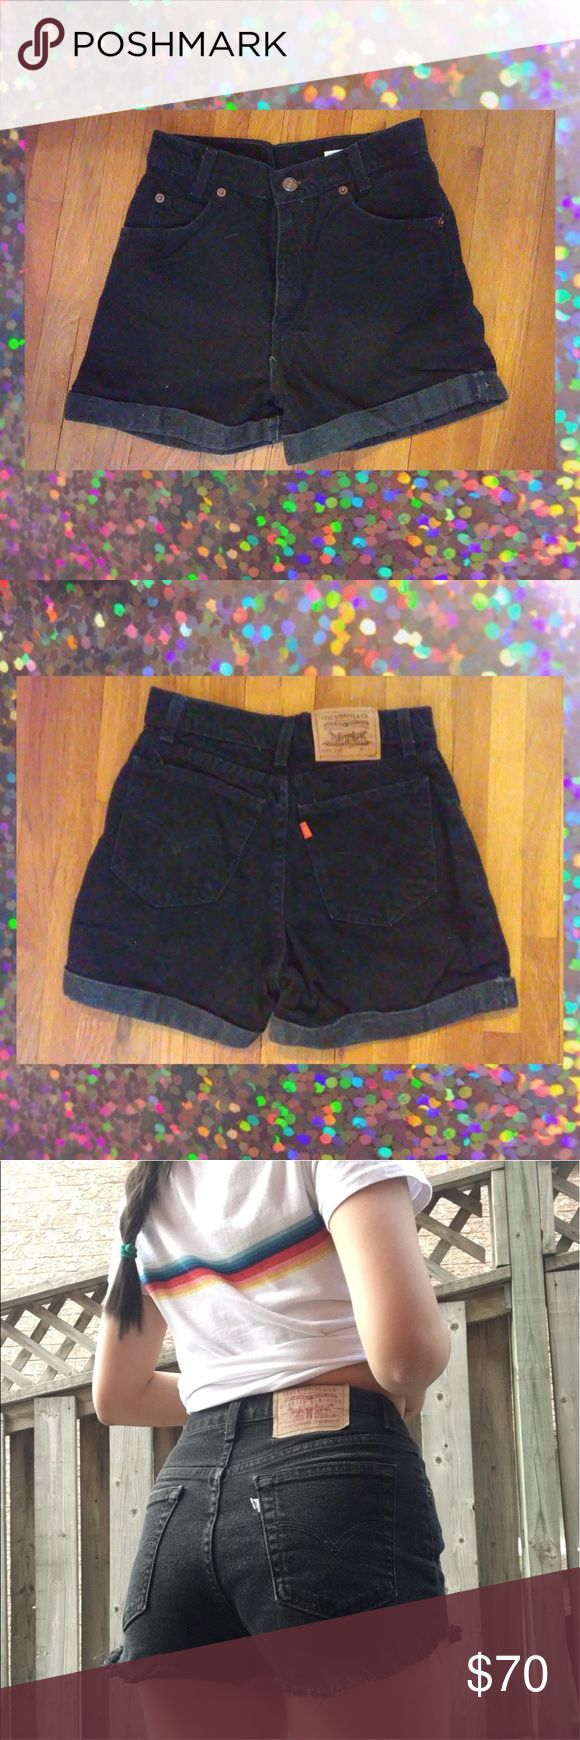 """Levi high waisted black denim shorts vintage✨ Levi high waisted vintage red tag black cuffed denim black shorts  red tag super cute & measured to a 26"""" waist so would fit a size 2-6 or waist size 24""""-27"""" with stretch  wear with your fave band tee or crop top!!  #levis #vintage #nastygal #topshop #90s #70s #highwaisted #denimshorts Levi's Shorts Jean Shorts"""